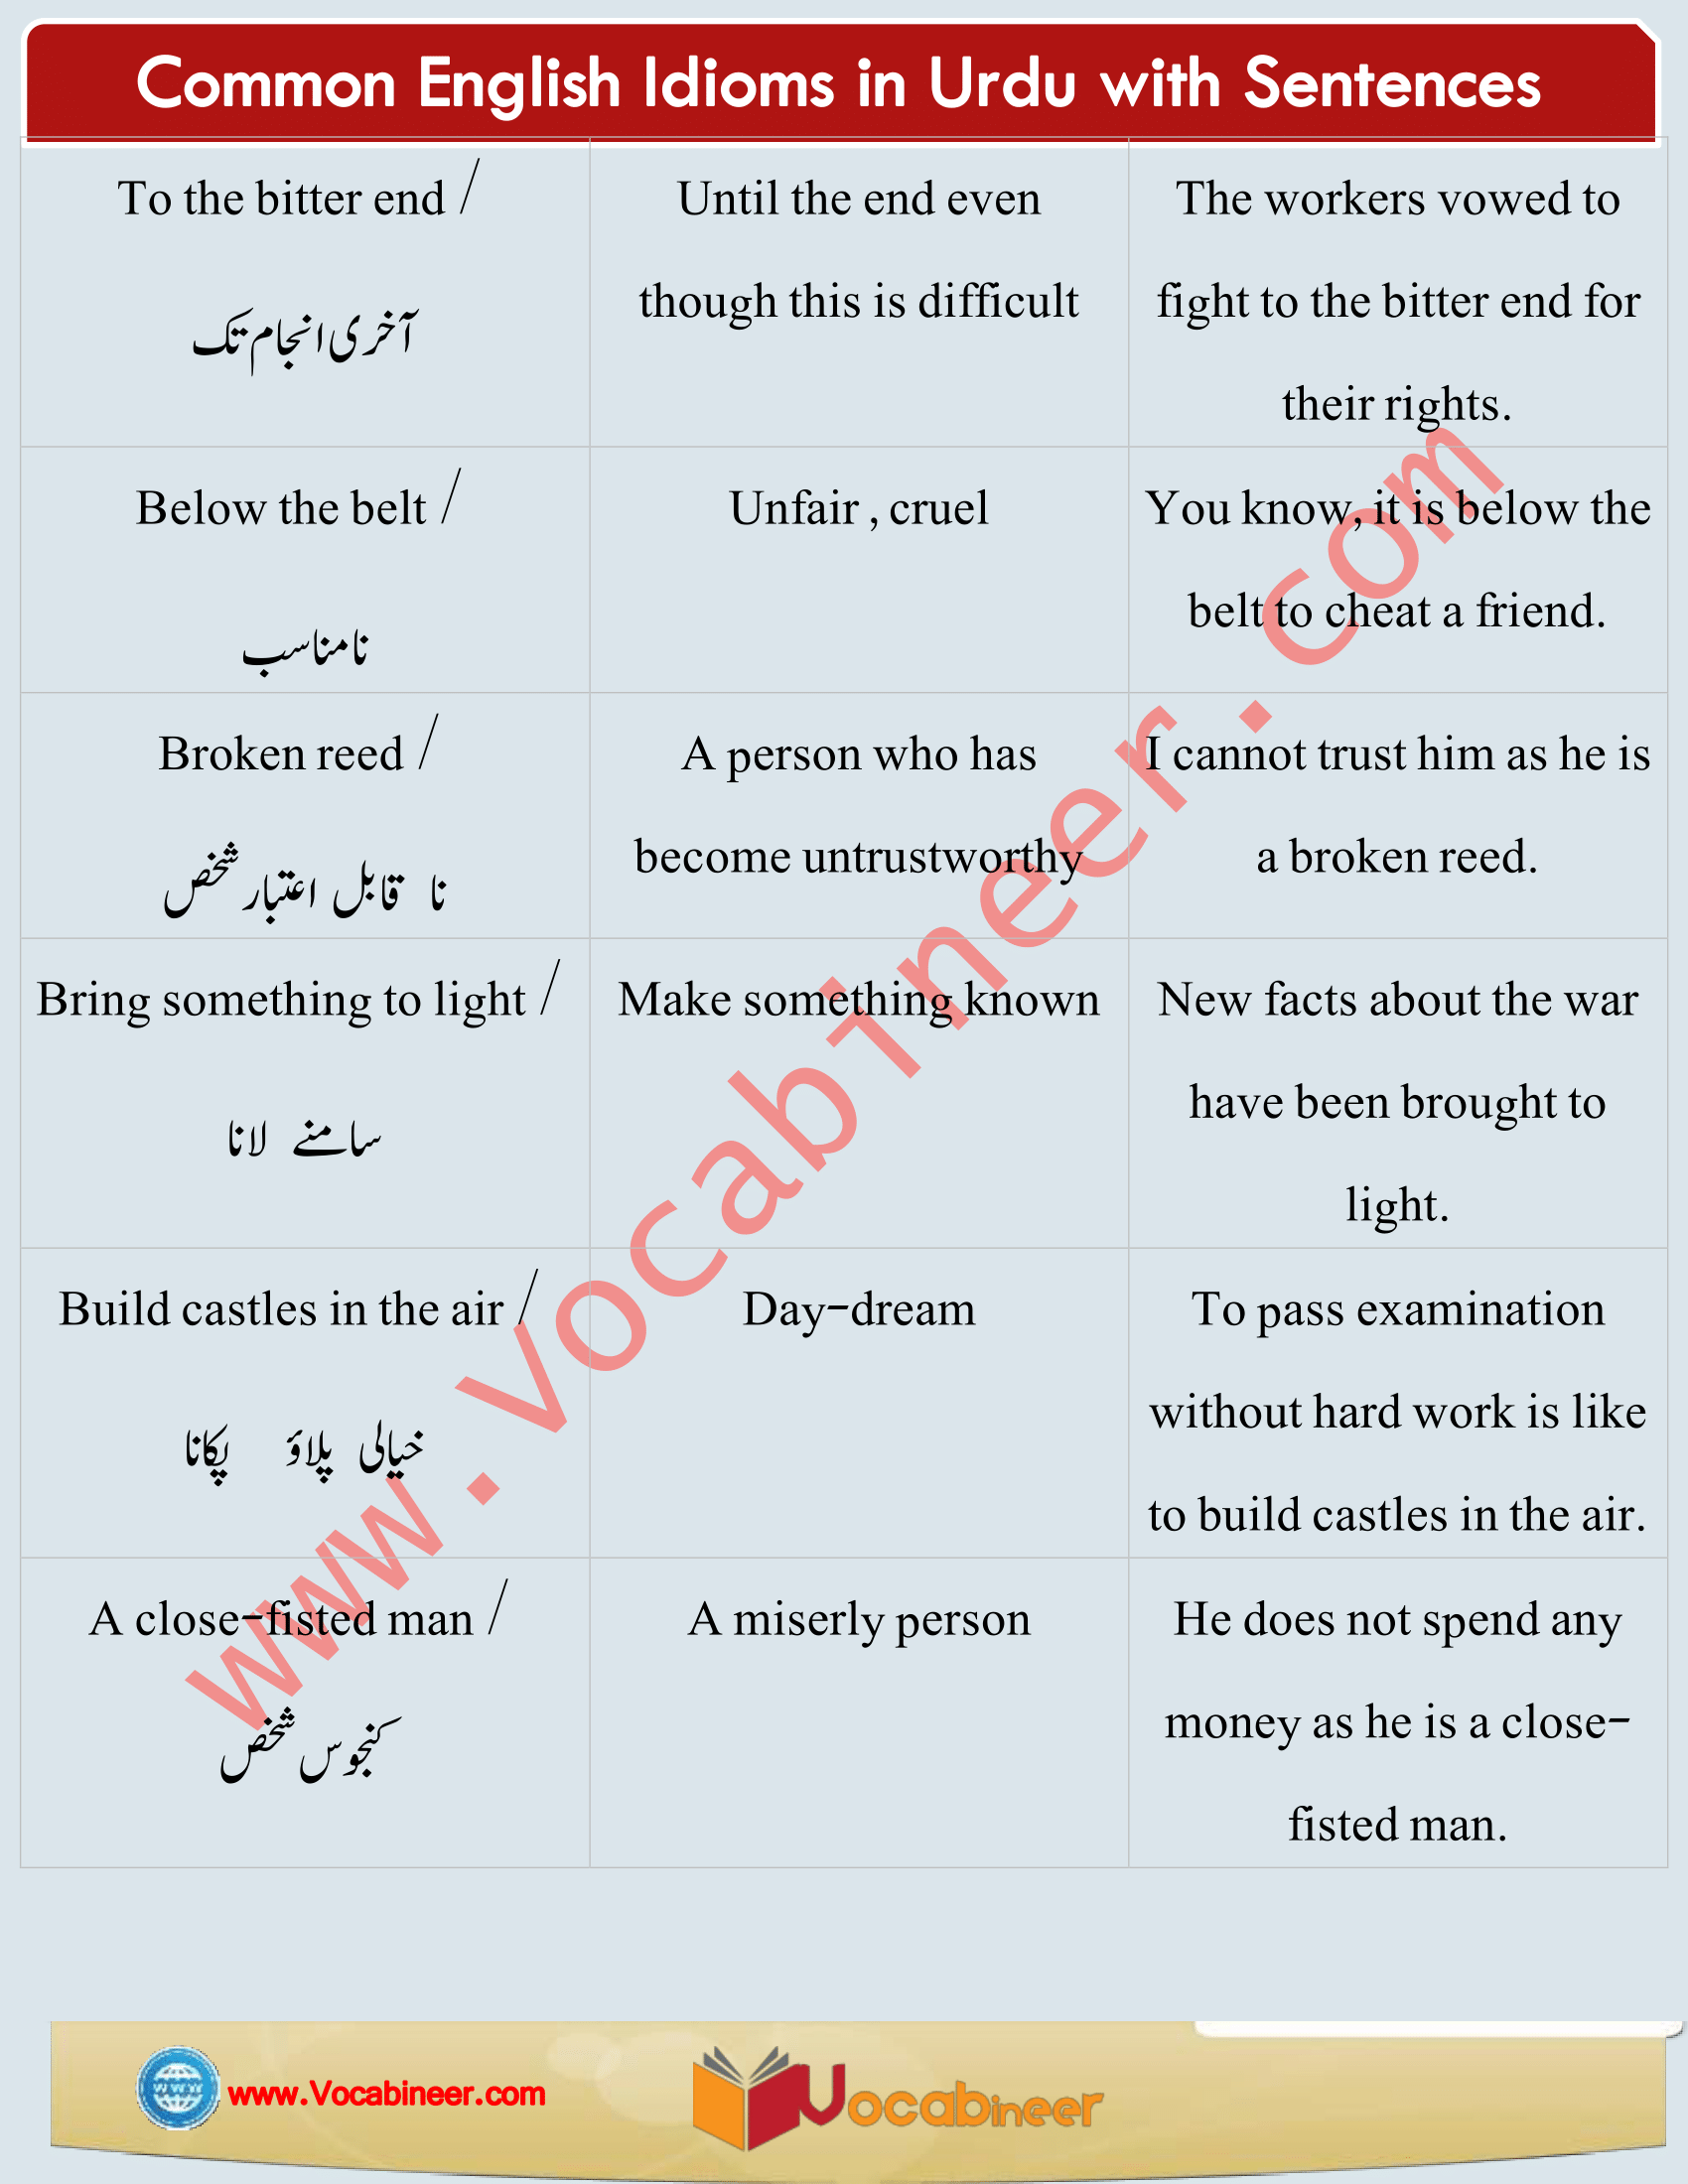 To make ends meet meaning in urdu